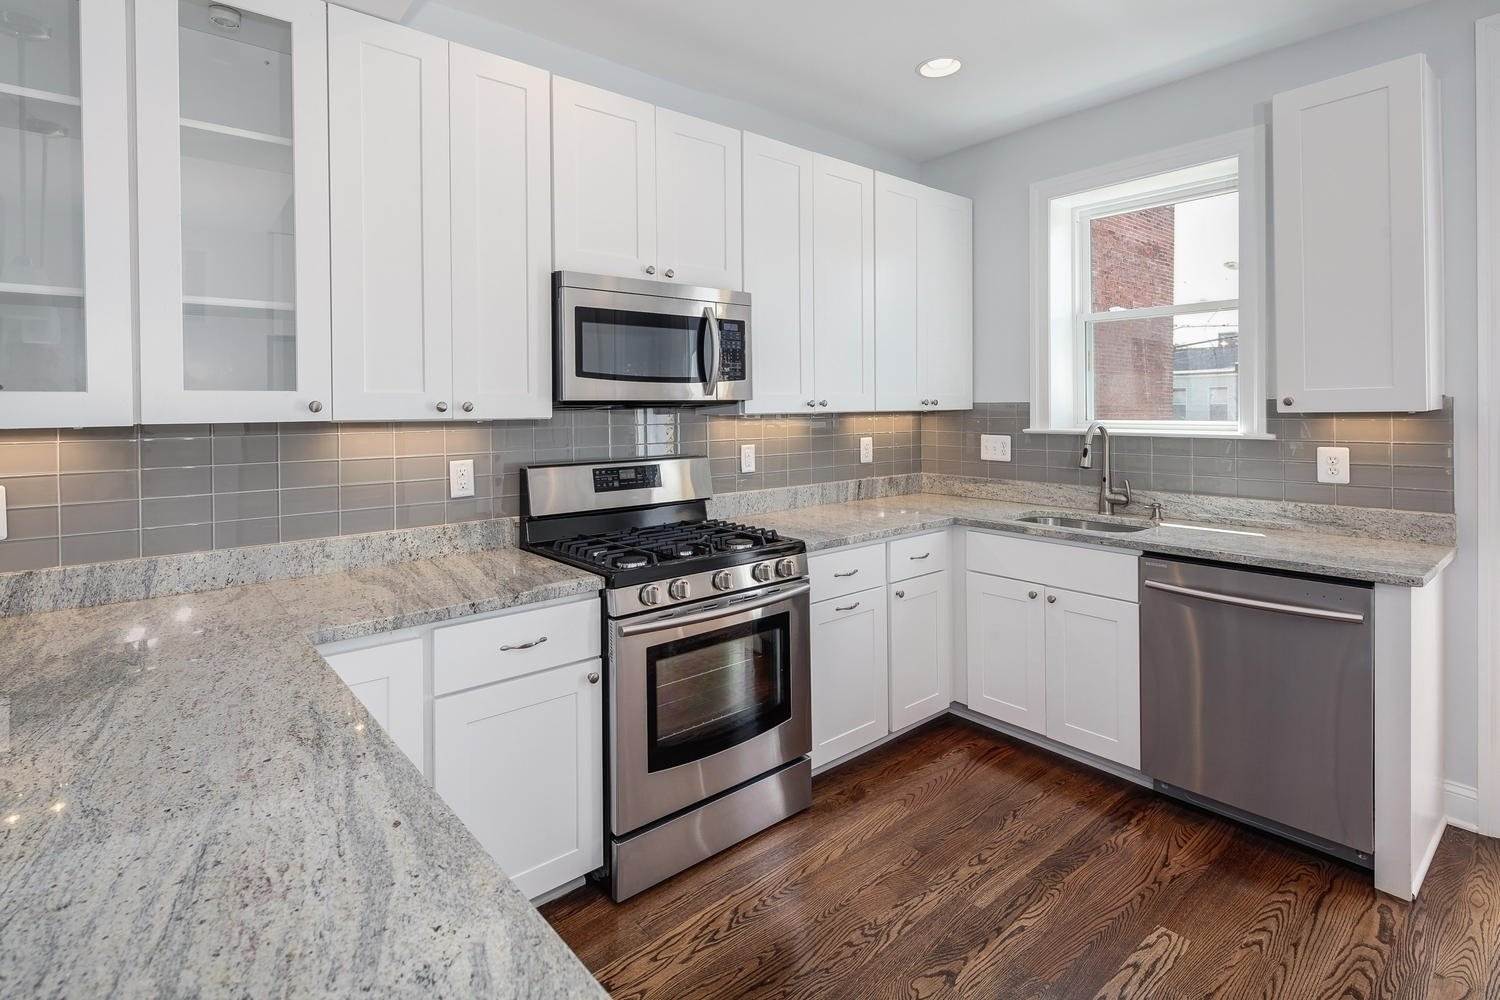 10 Spectacular Kitchen Countertop Ideas With White Cabinets gray granite countertop ideas with white cabinets the best design 2020